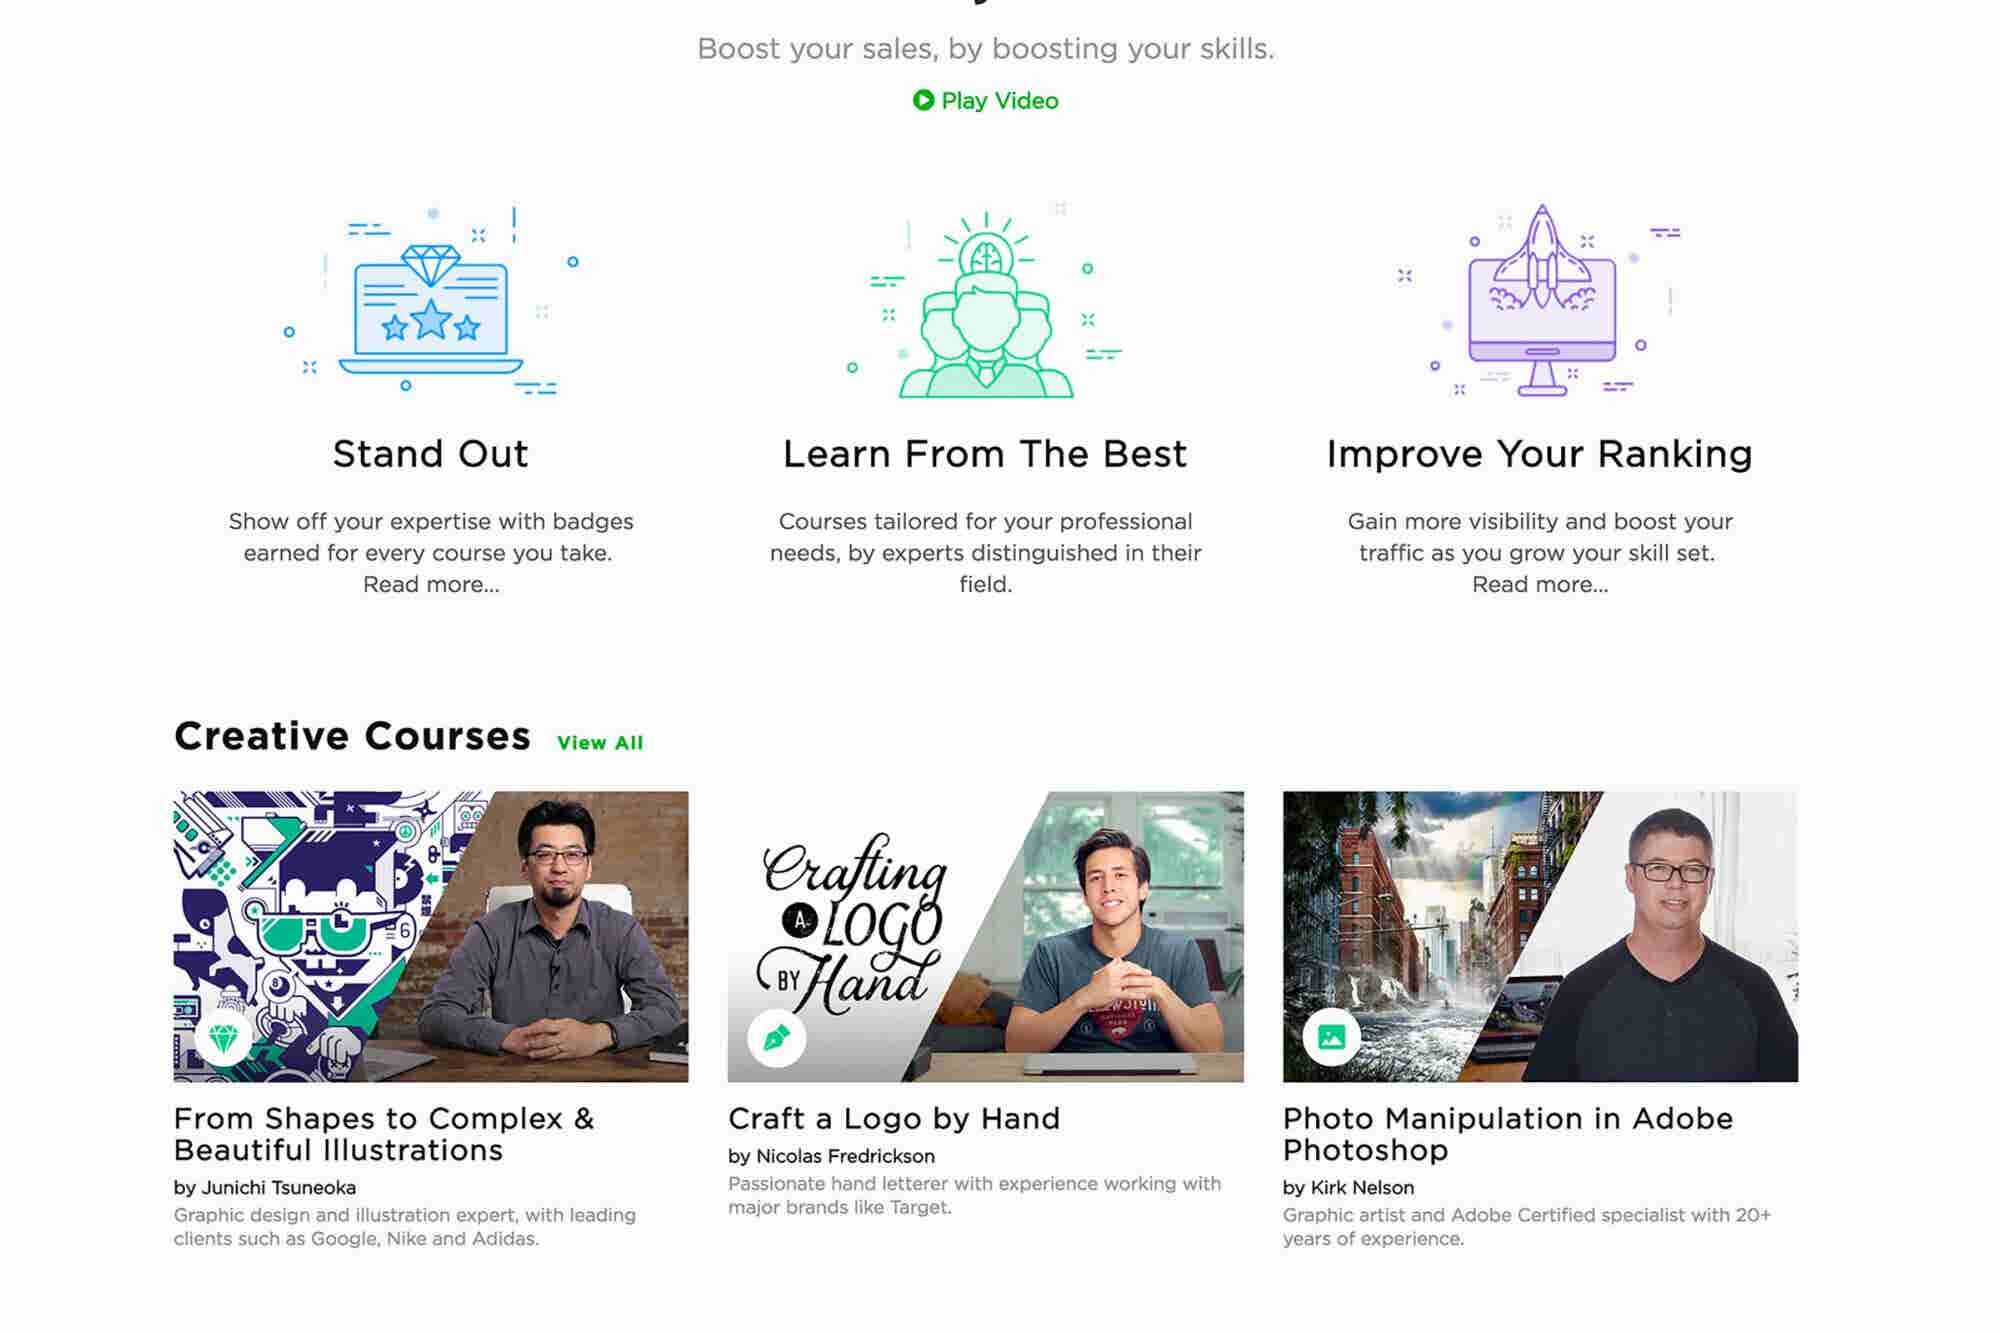 This New Platform Aims to Help Freelancers Boost Their Marketing Skills